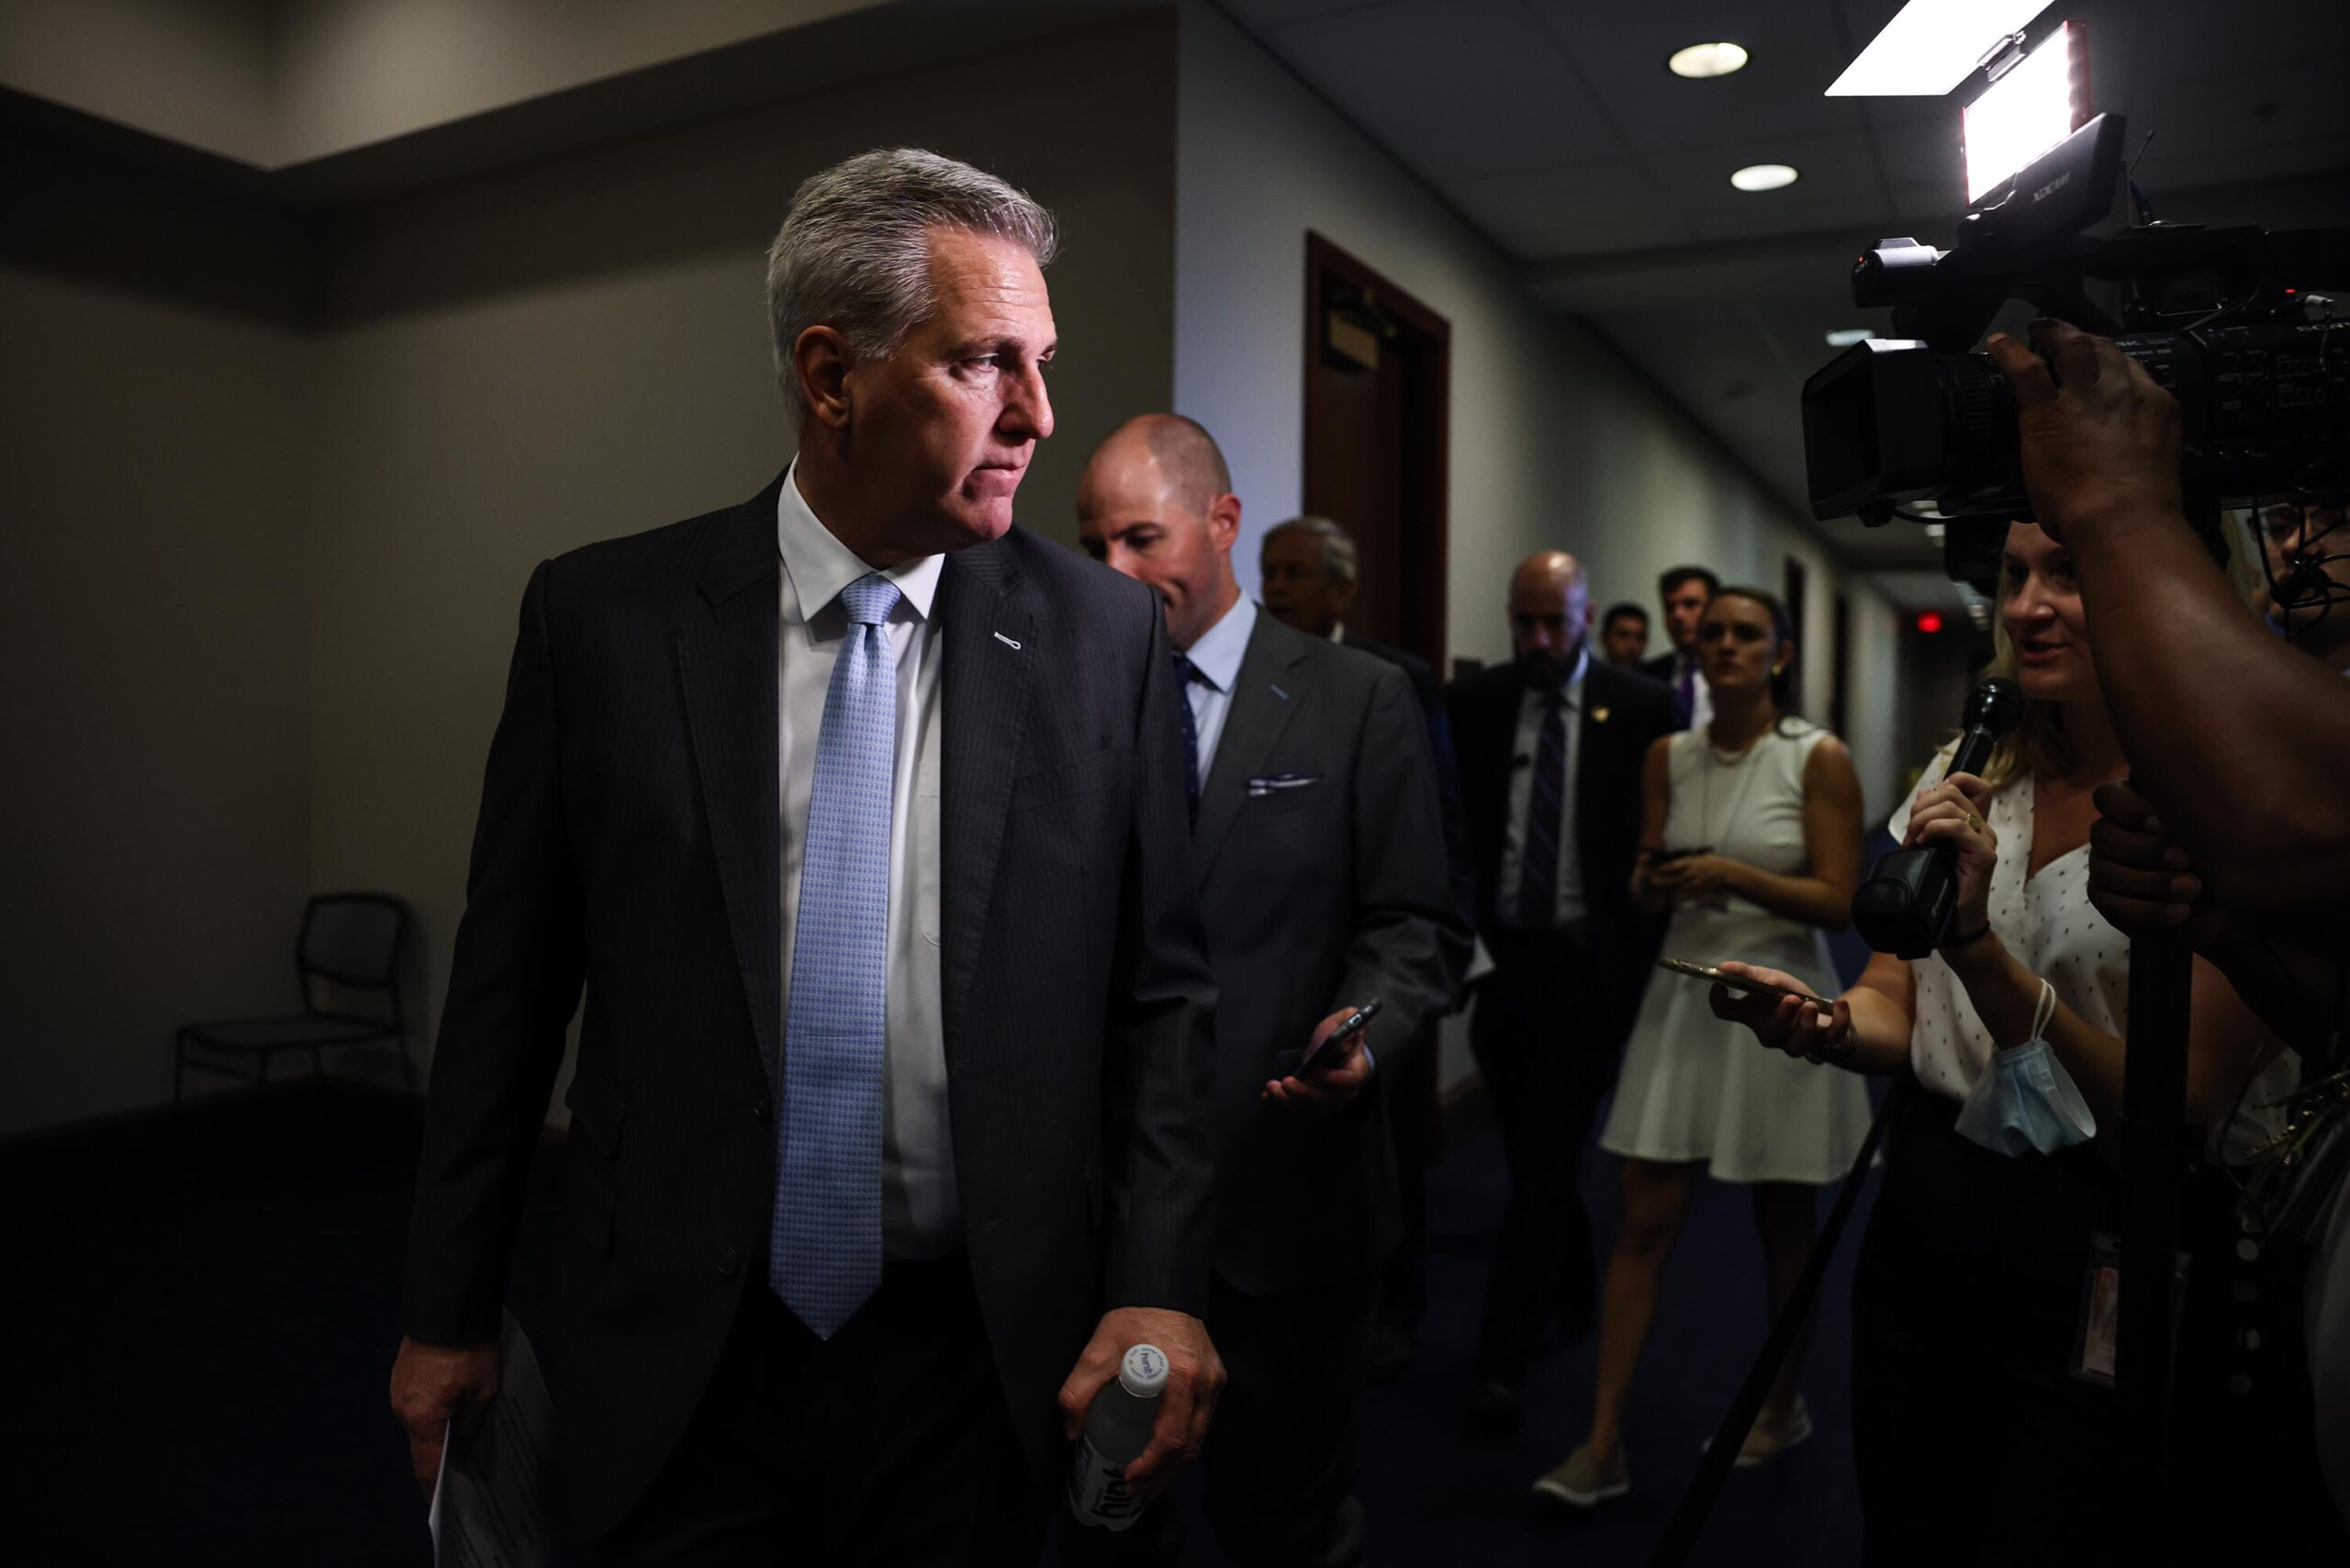 <i>Anna Moneymaker/Getty Images</i><br/>House Minority Leader Kevin McCarthy chose five Republicans to serve on the House select committee.